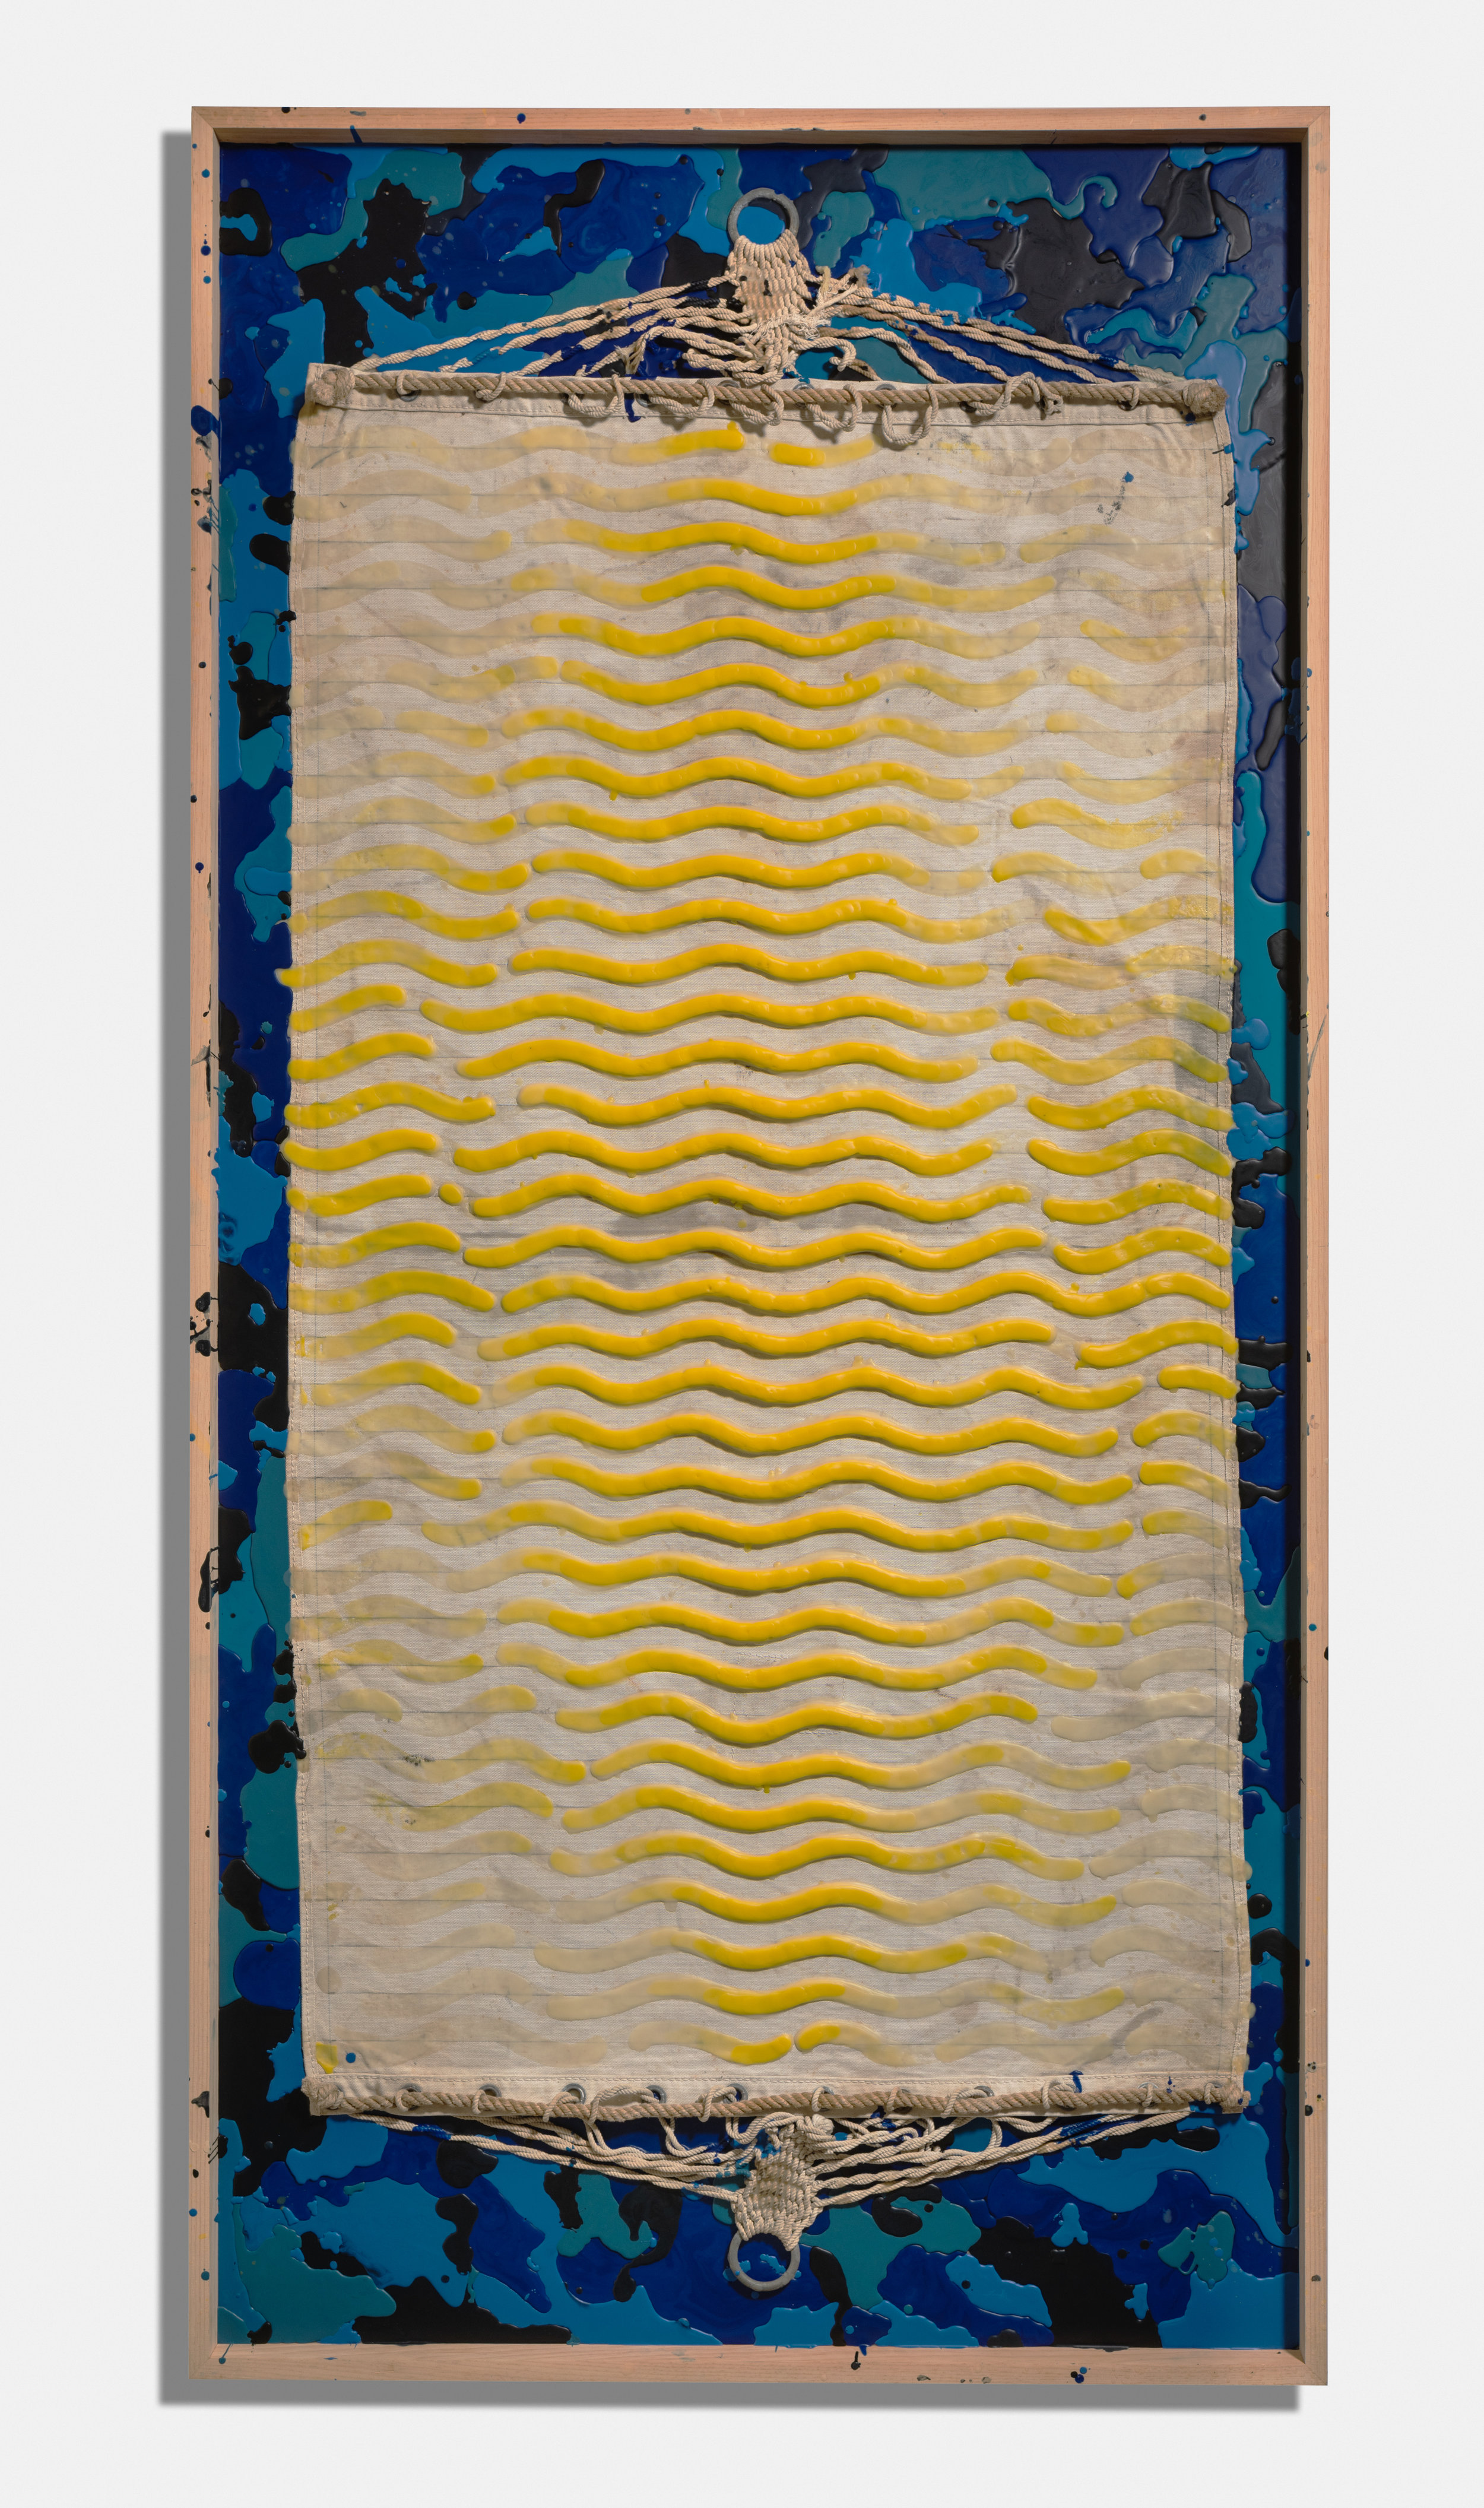 Paradis Island , 2015, encaustic and hammock on panel, 96 x 48 x 4 1/2 inches